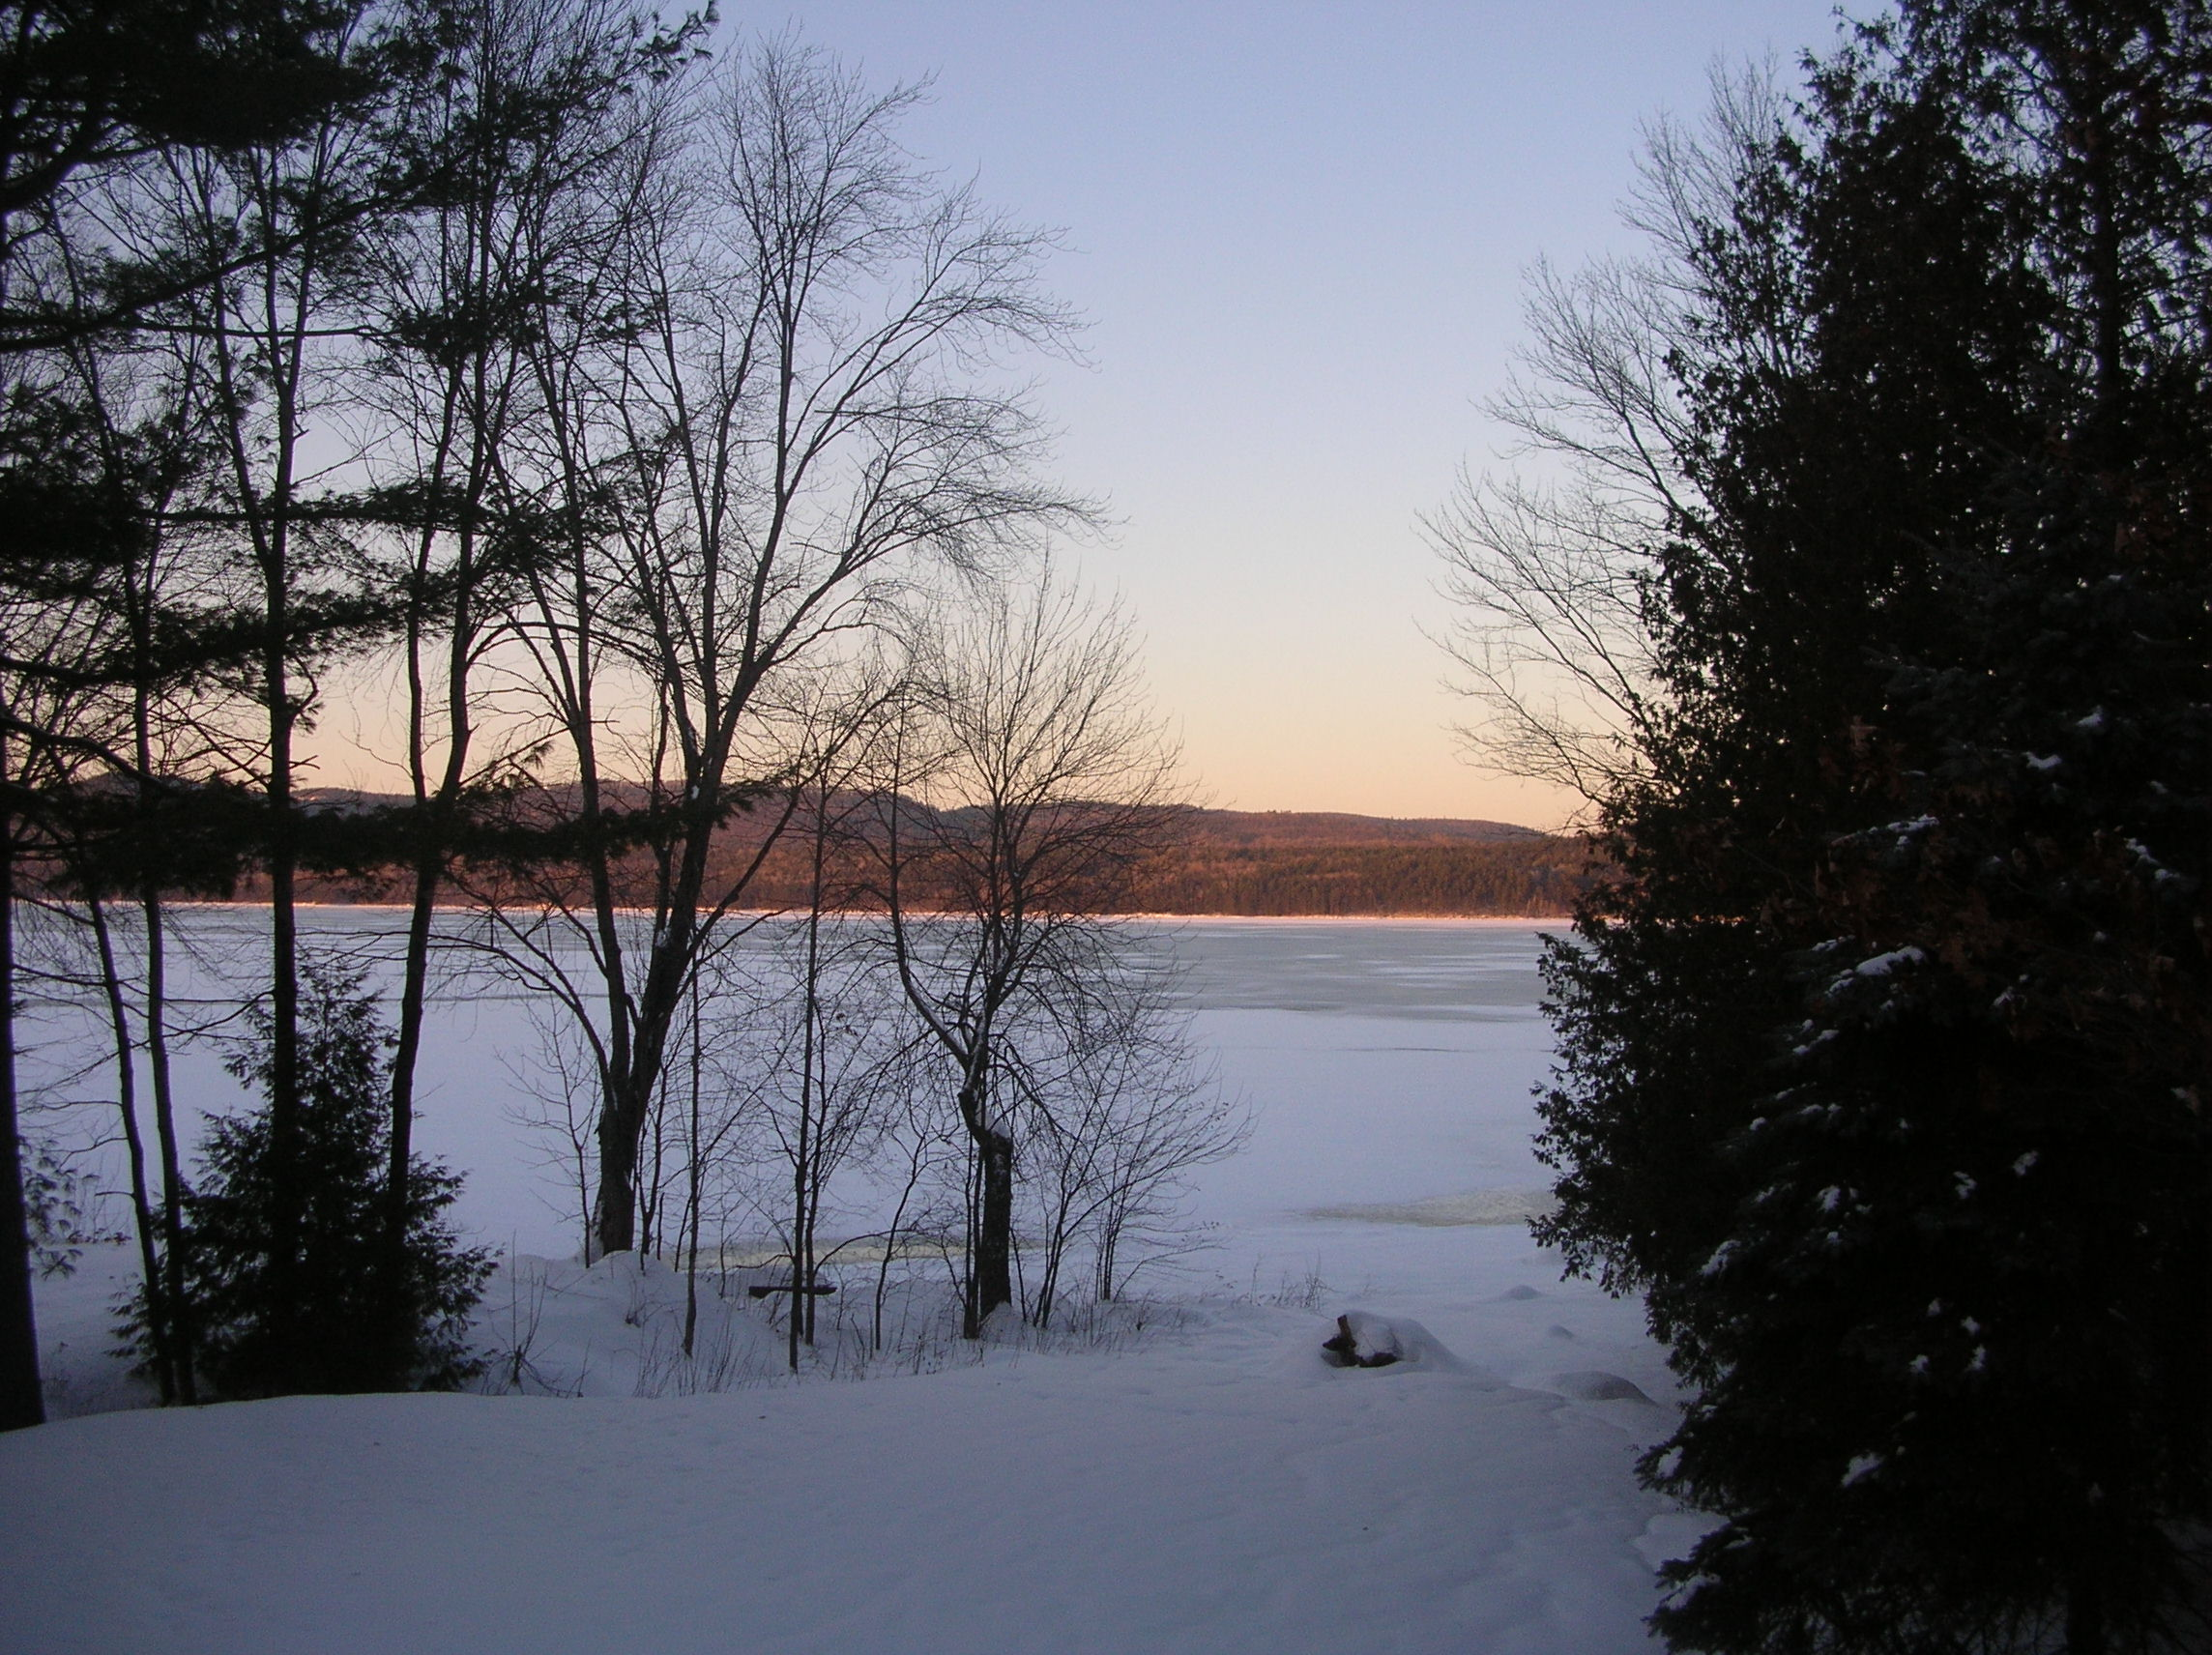 The Dmytrenko backyard, overlooking the frozen-over Ottawa River and Quebec's Laurentian mountains.